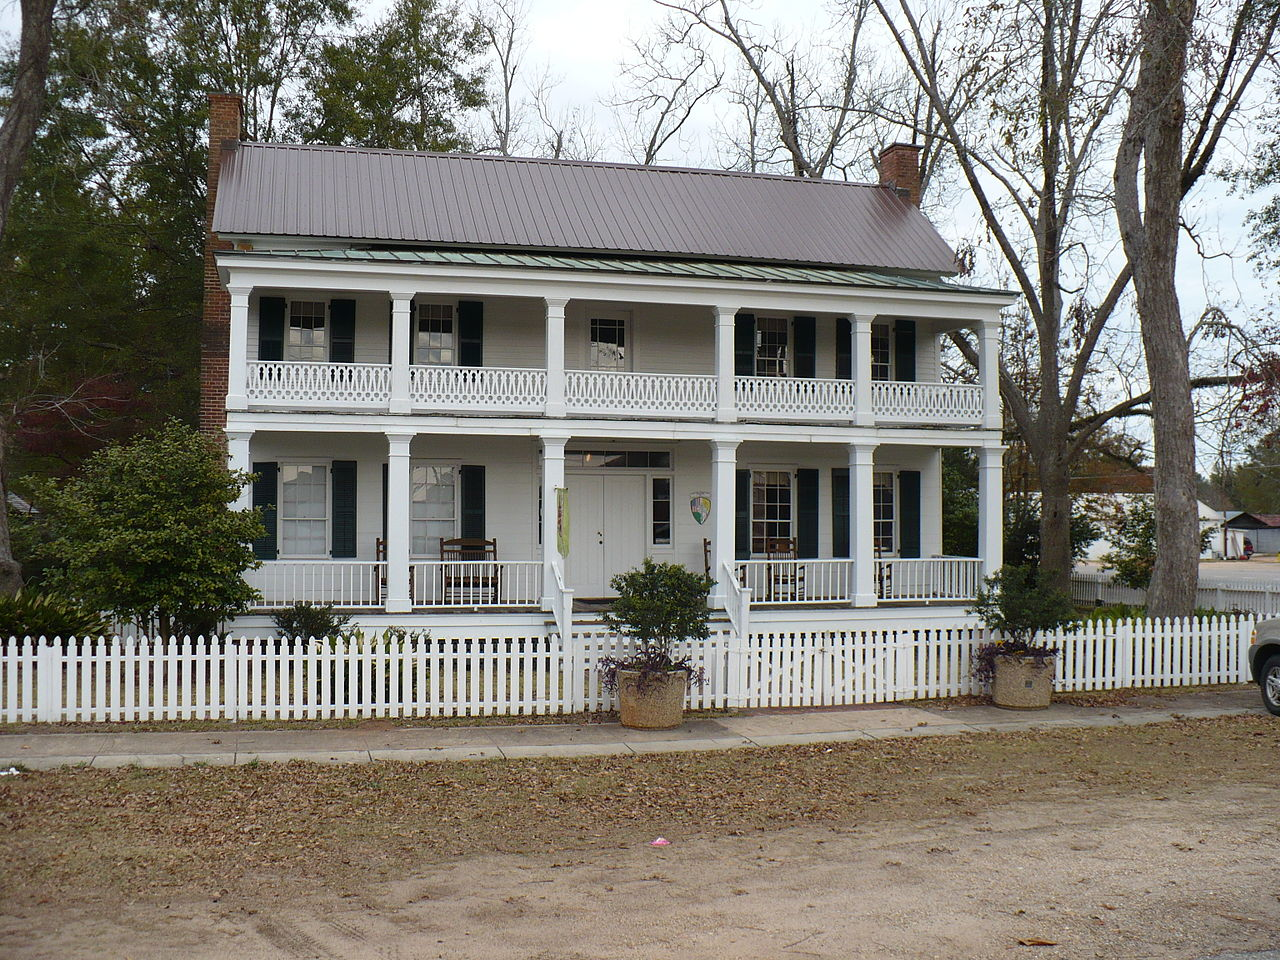 Alston-Cobb House in Grove Hill, Clarke County, Alabama